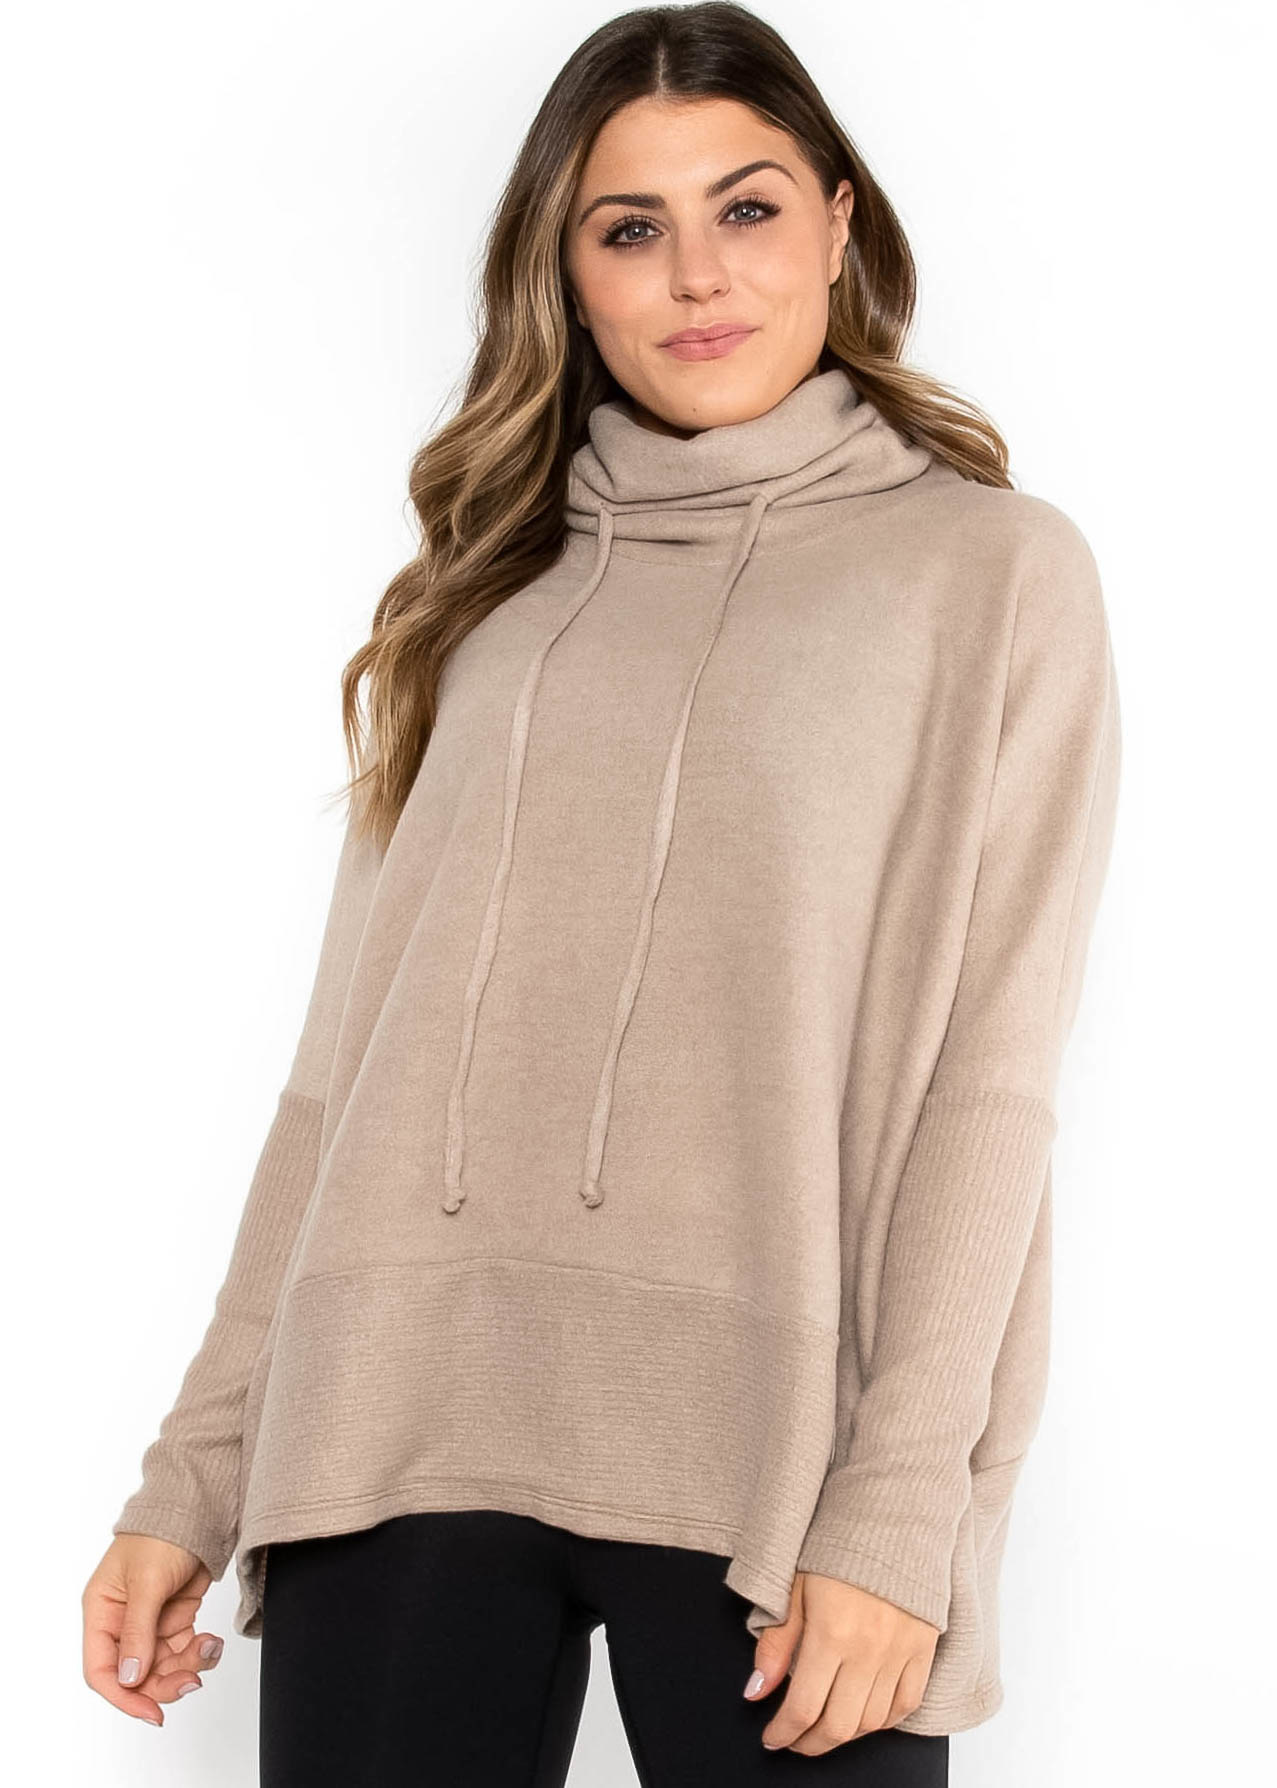 WARM YOU UP COWL NECK SWEATER